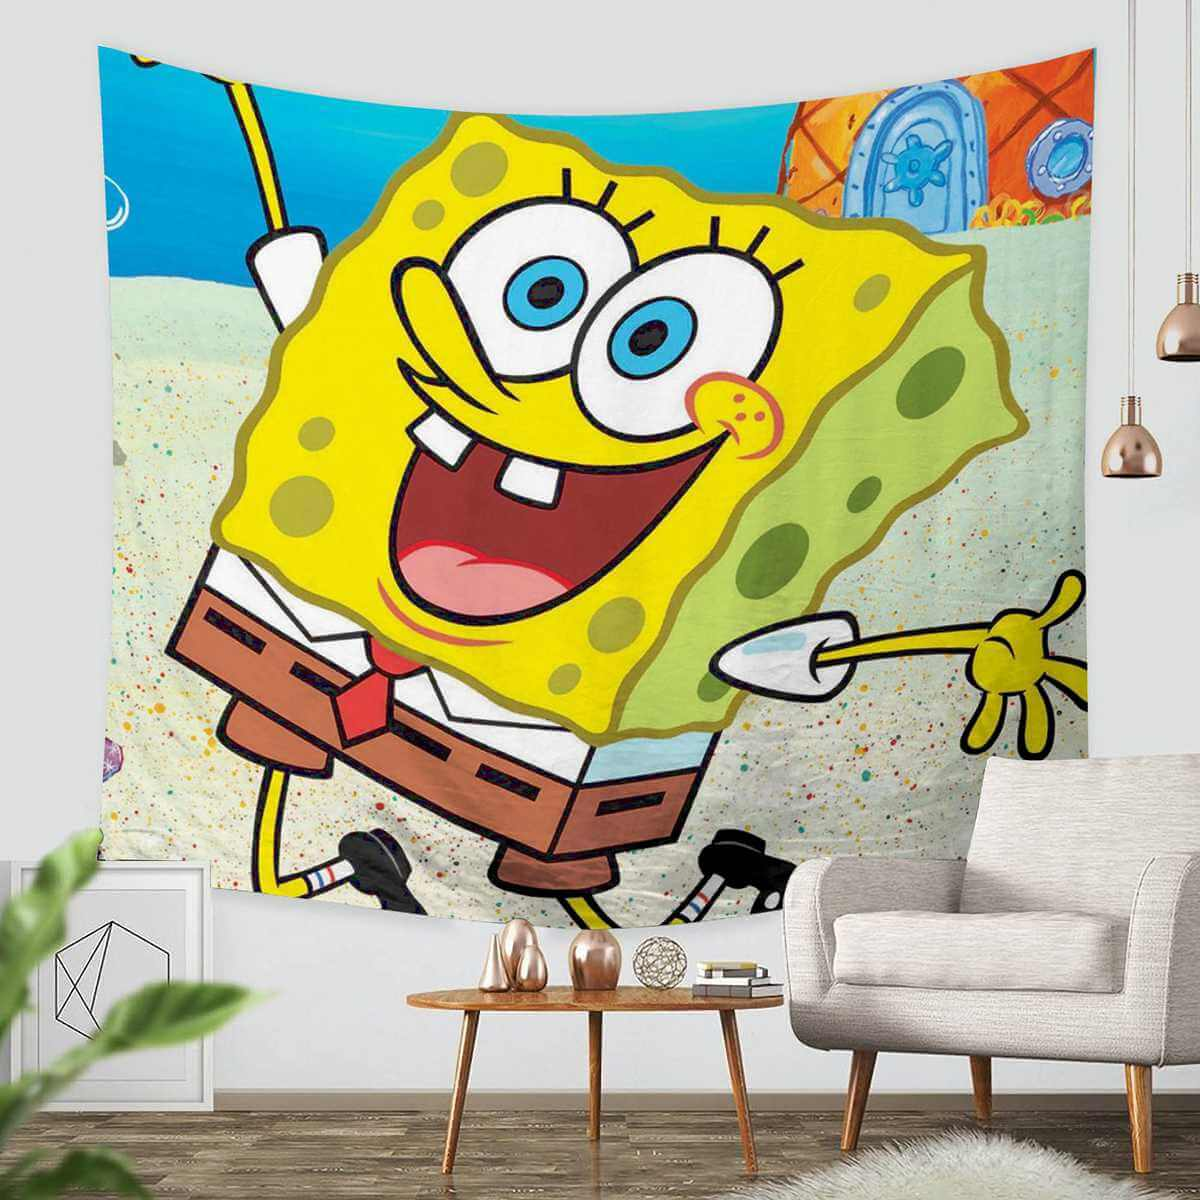 3D Custom SpongeBob SquarePants Tapestry Throw Wall Hanging ...